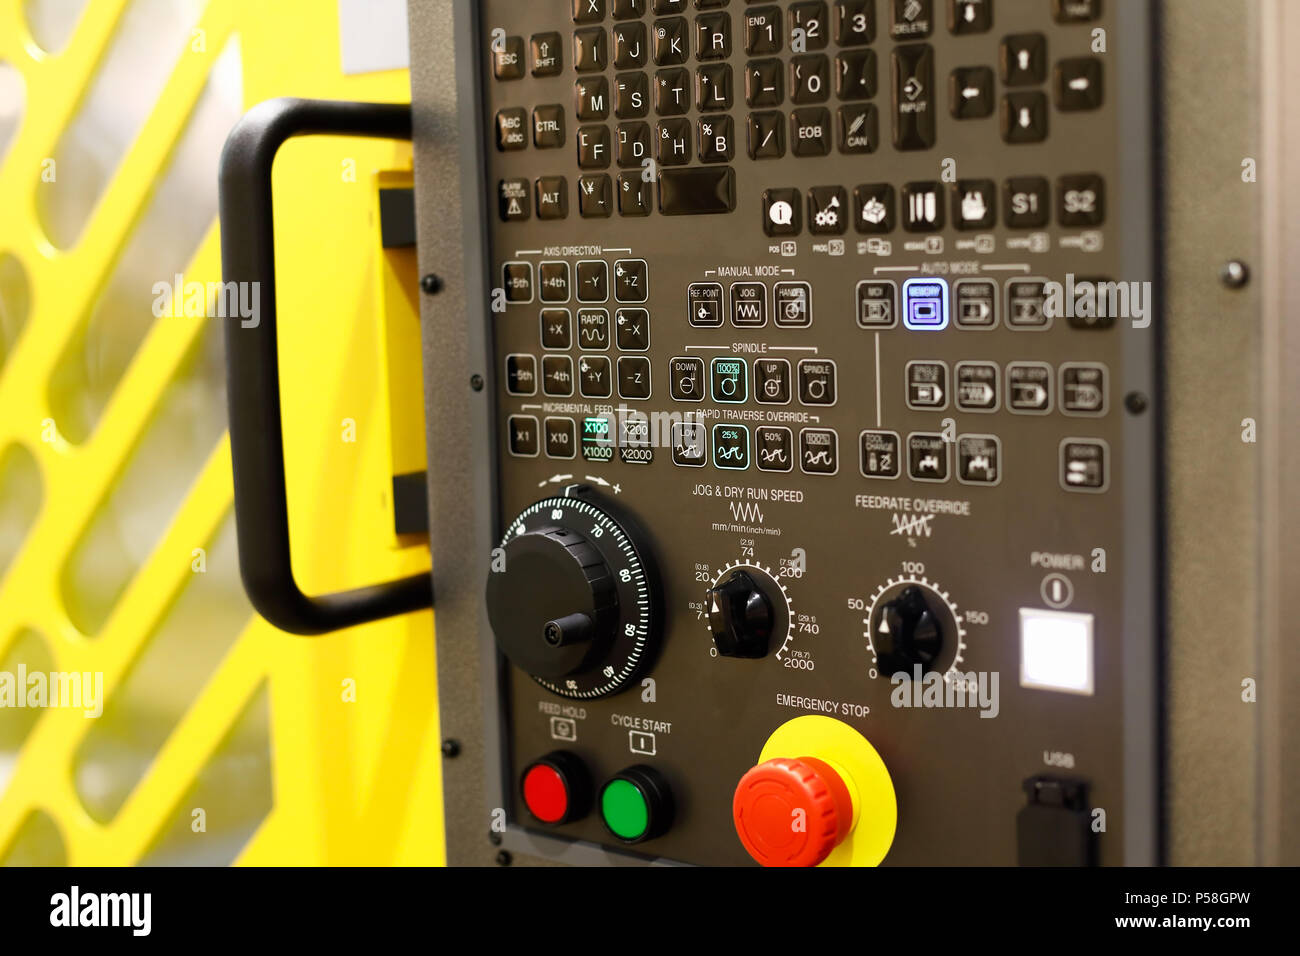 A control panel of modern 5-axis CNC lathe machine. Selective focus. - Stock Image